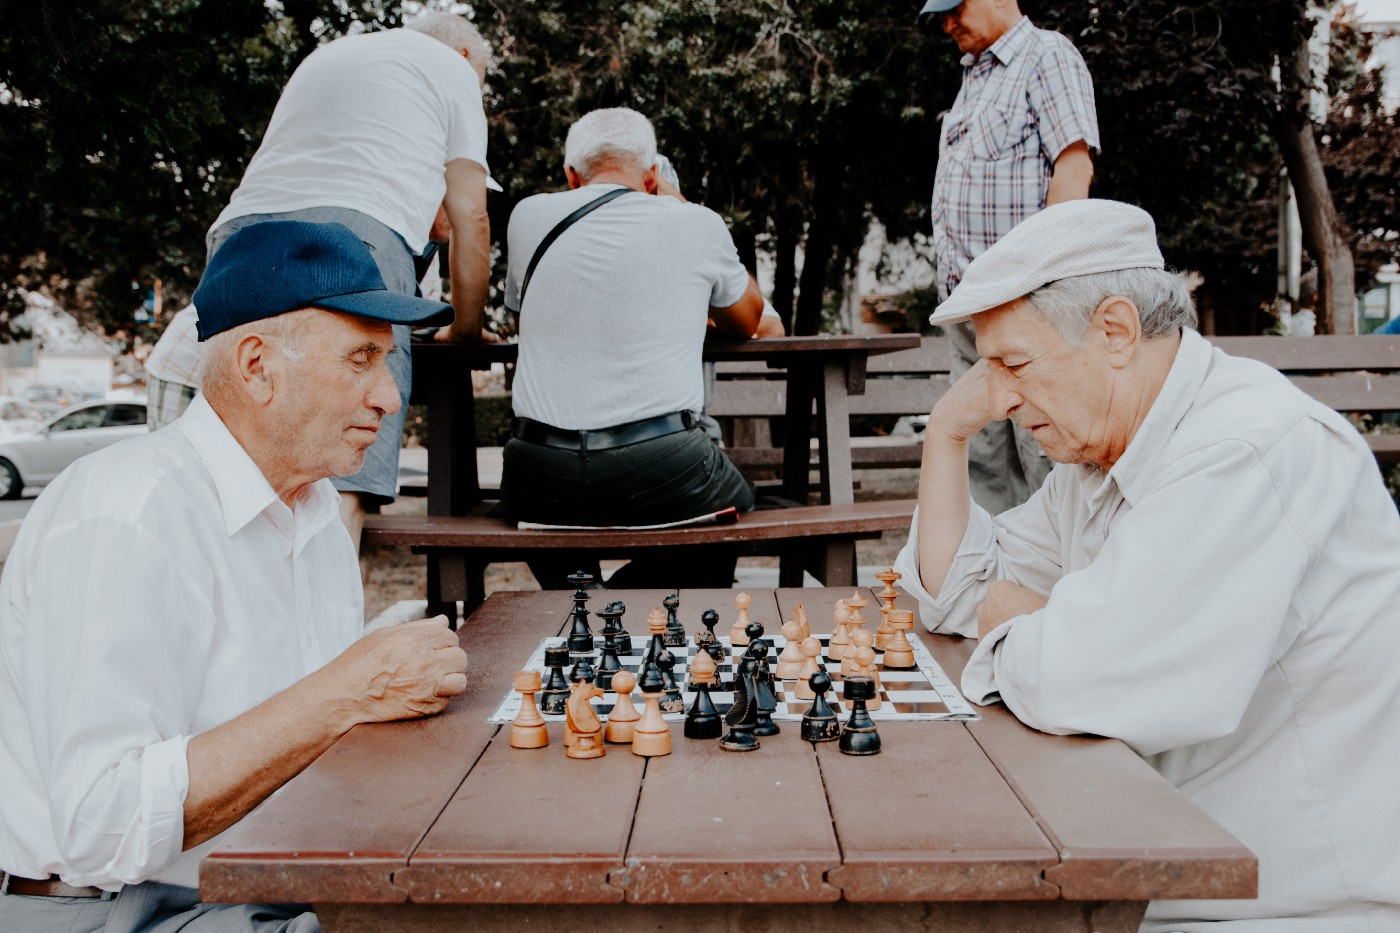 Two old men playing chess at a park